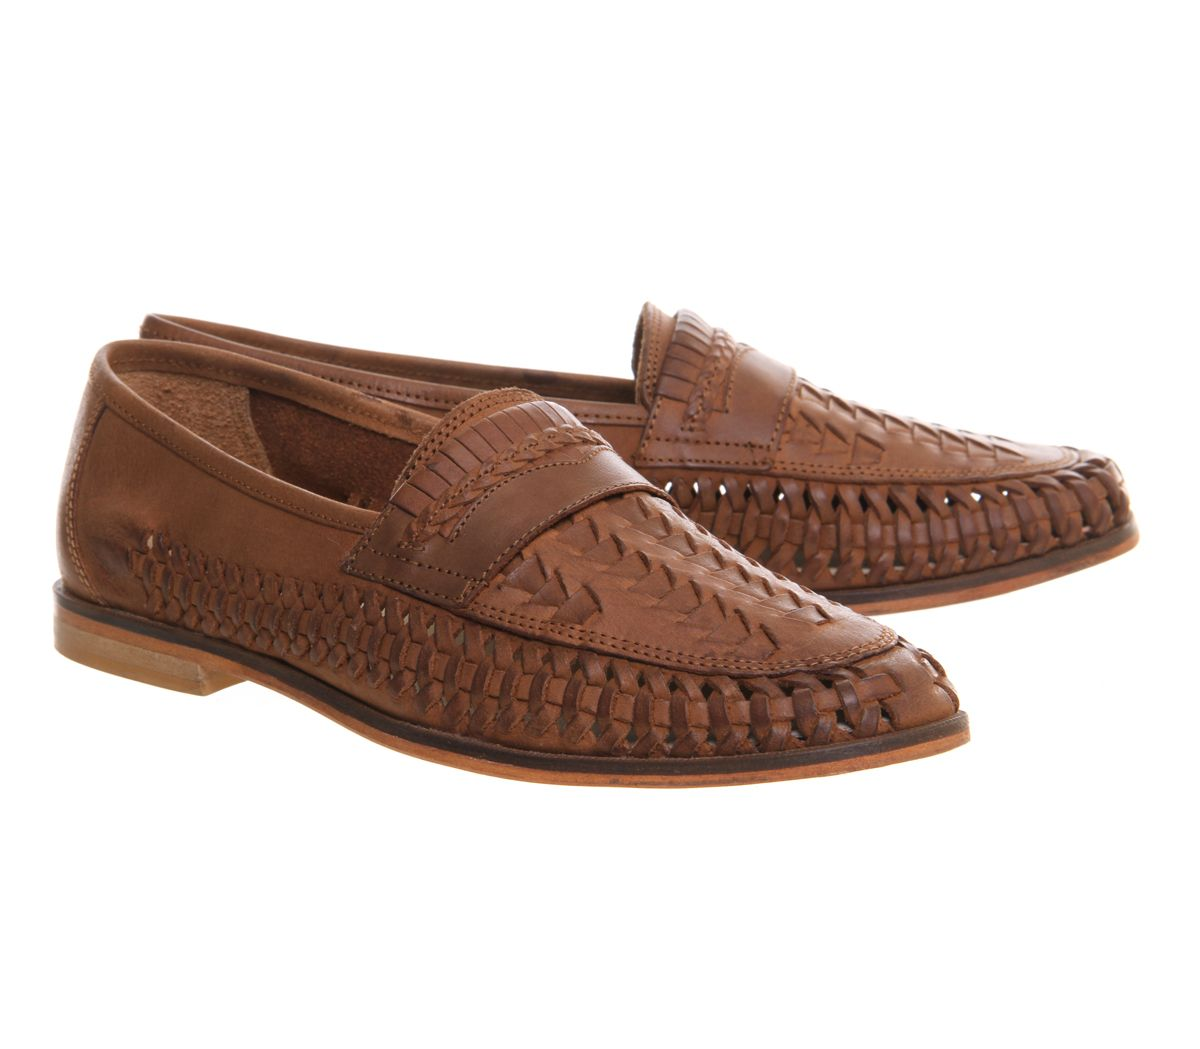 063619cfec9e5d Office Bow Weave Slip On Loafers Tan Washed Leather - Casual